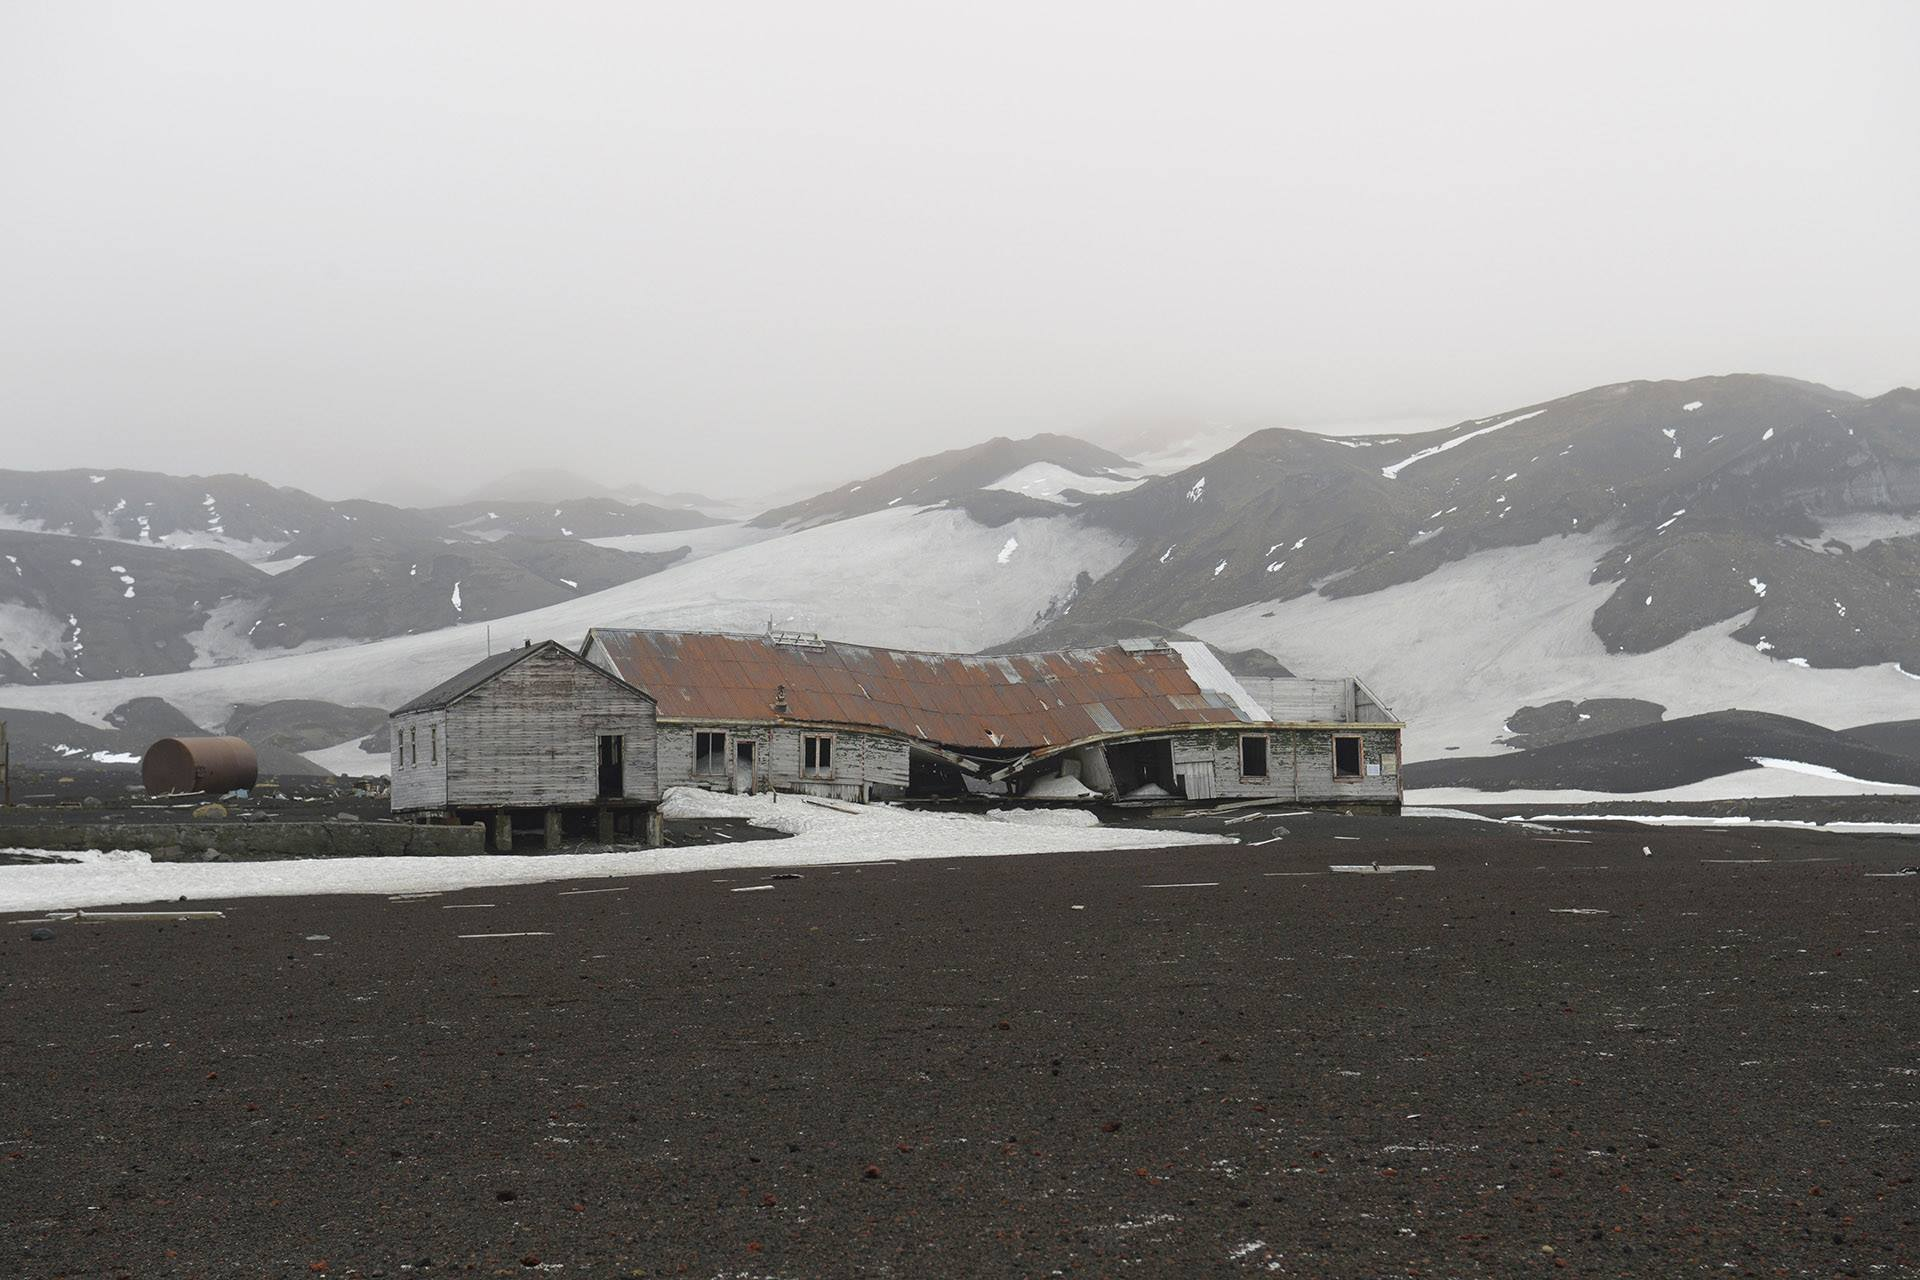 Deception Island, South Shetland Islands, Antractic Ocean VI, 2014<br/>